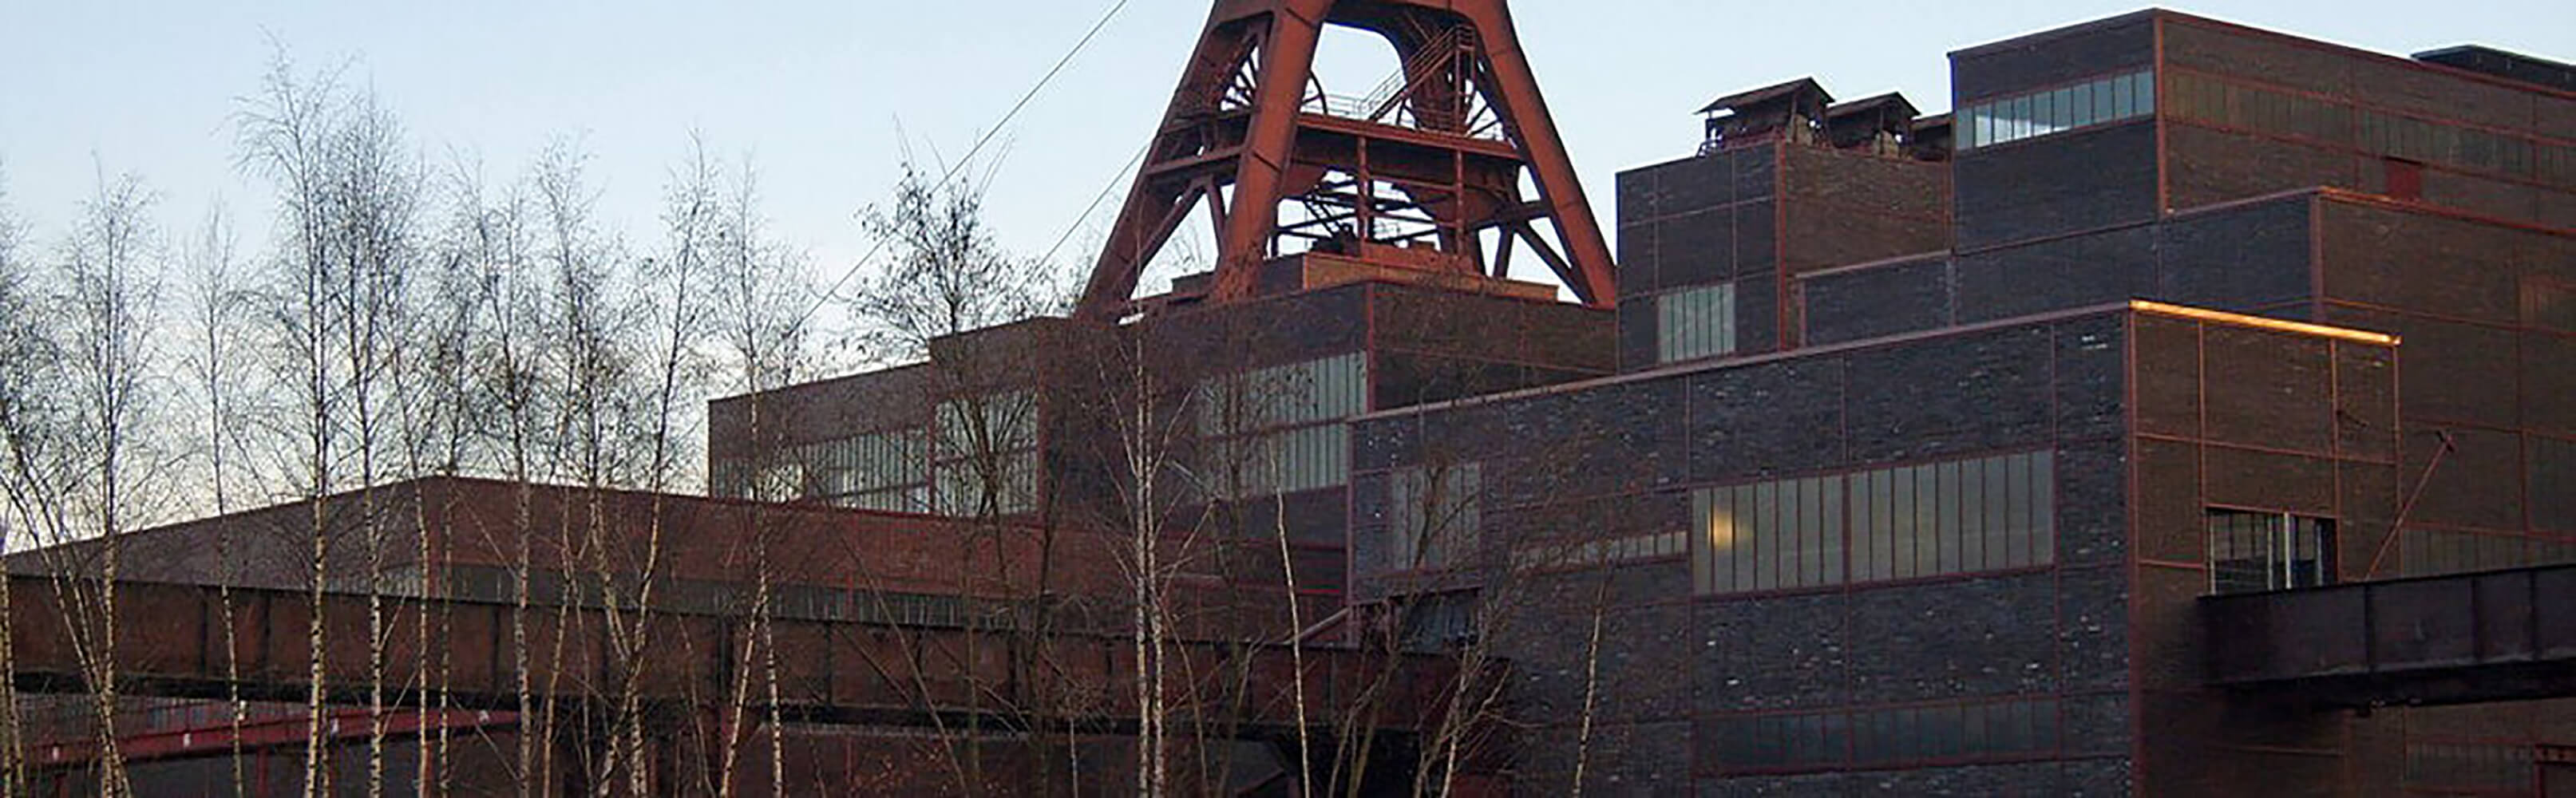 Zeche Zollverein 1